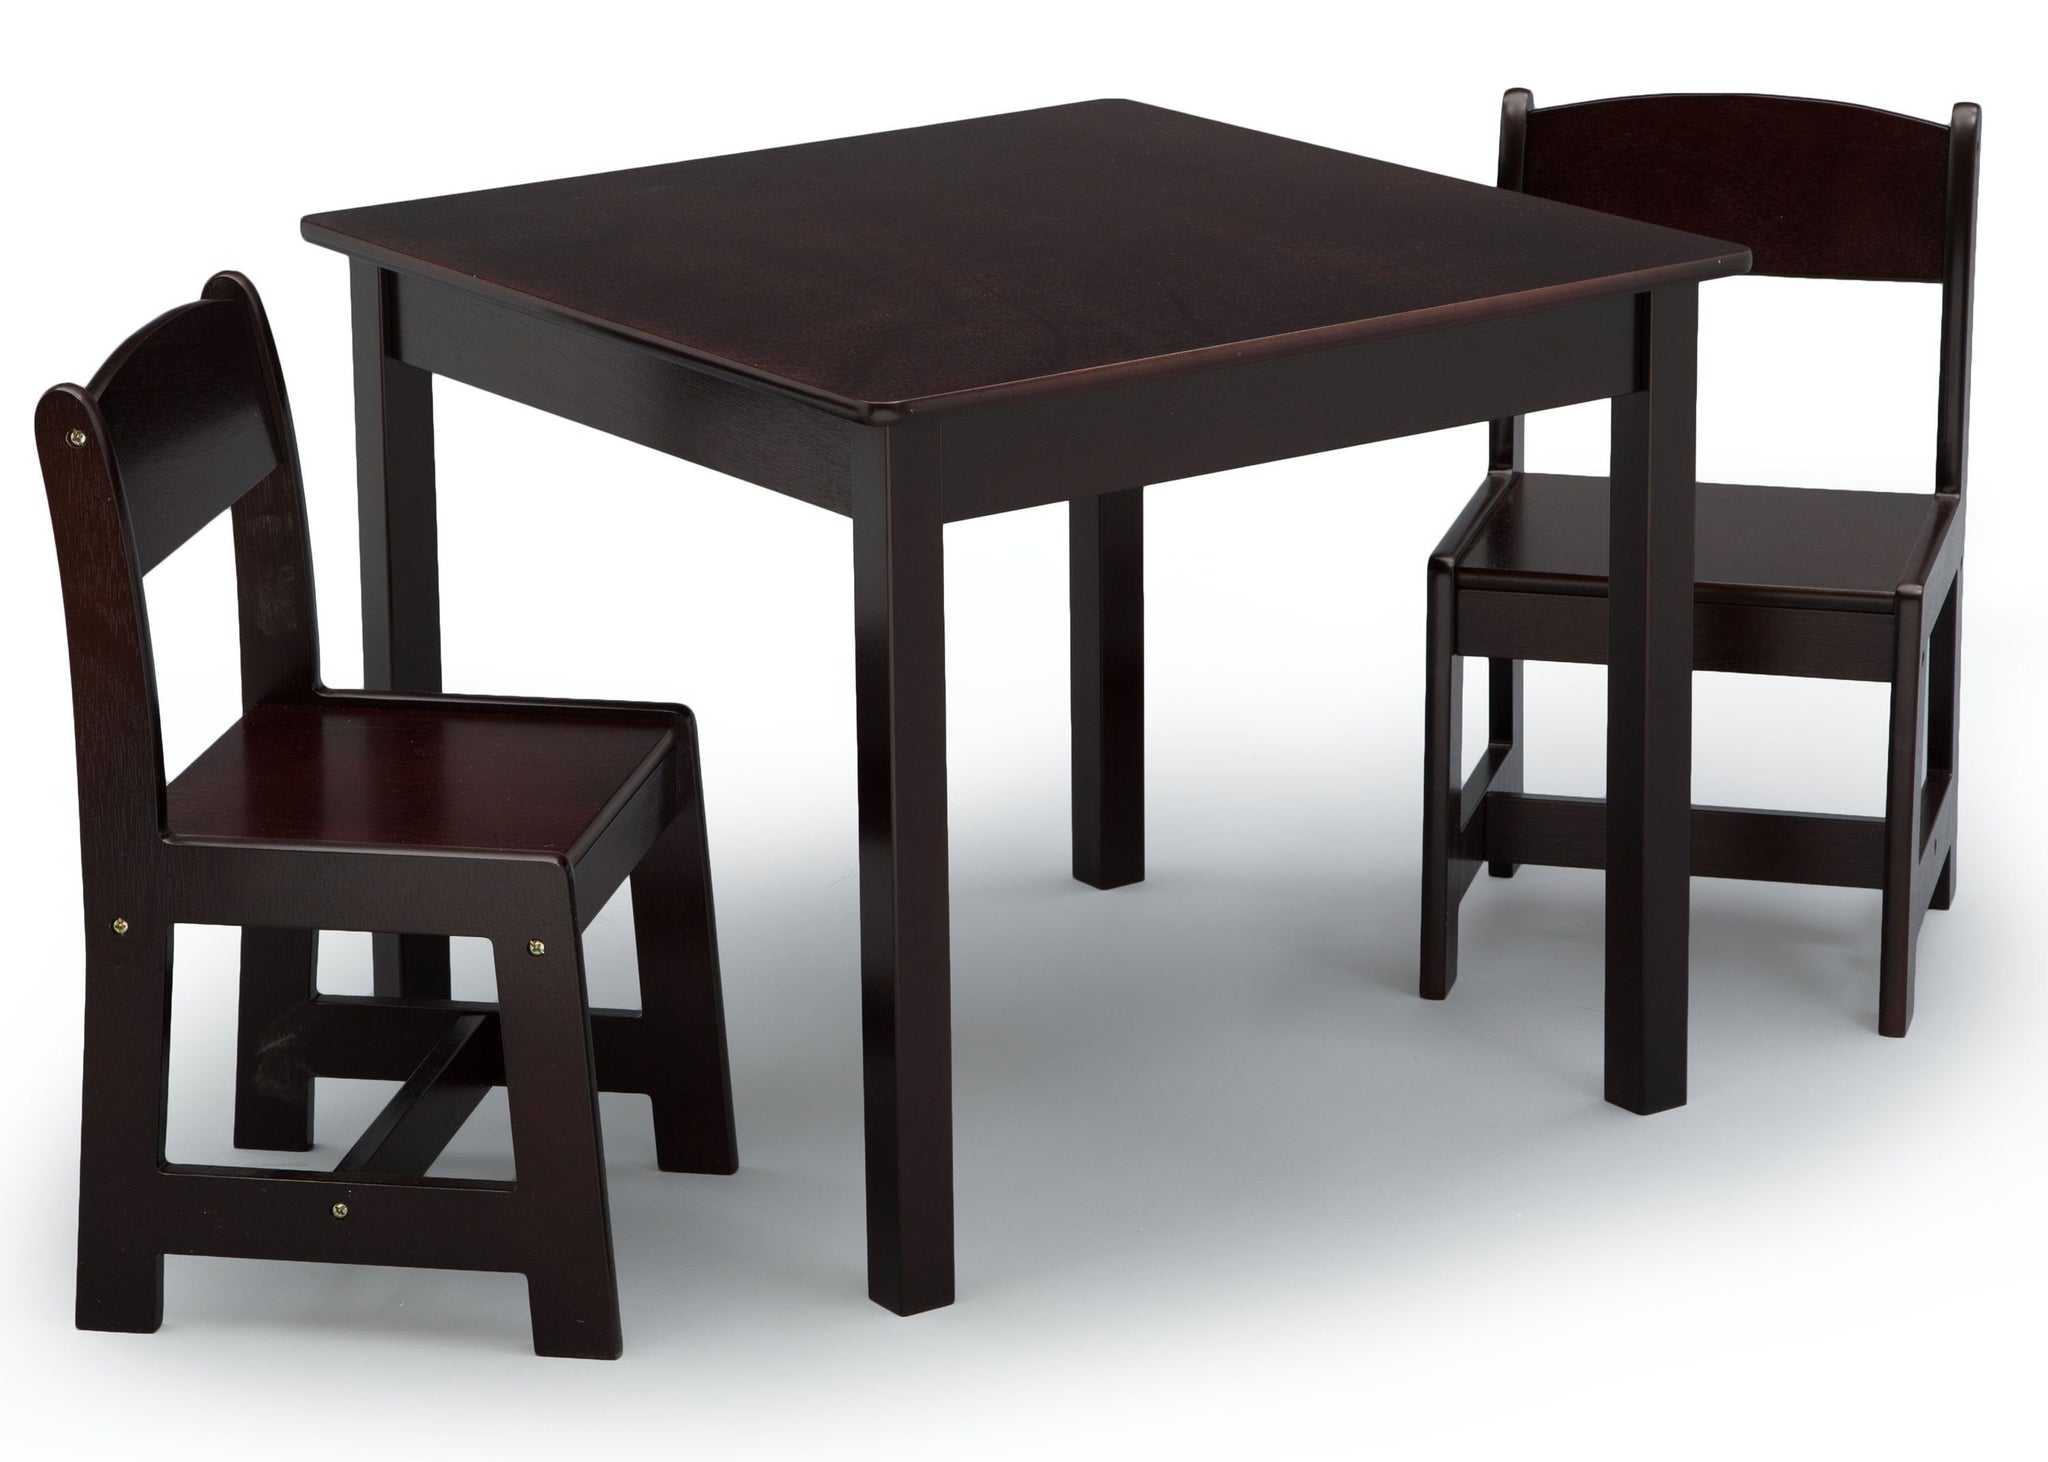 Delta Children Dark Chocolate (207) MySize Table & Chairs Set, Right Angle, c2c